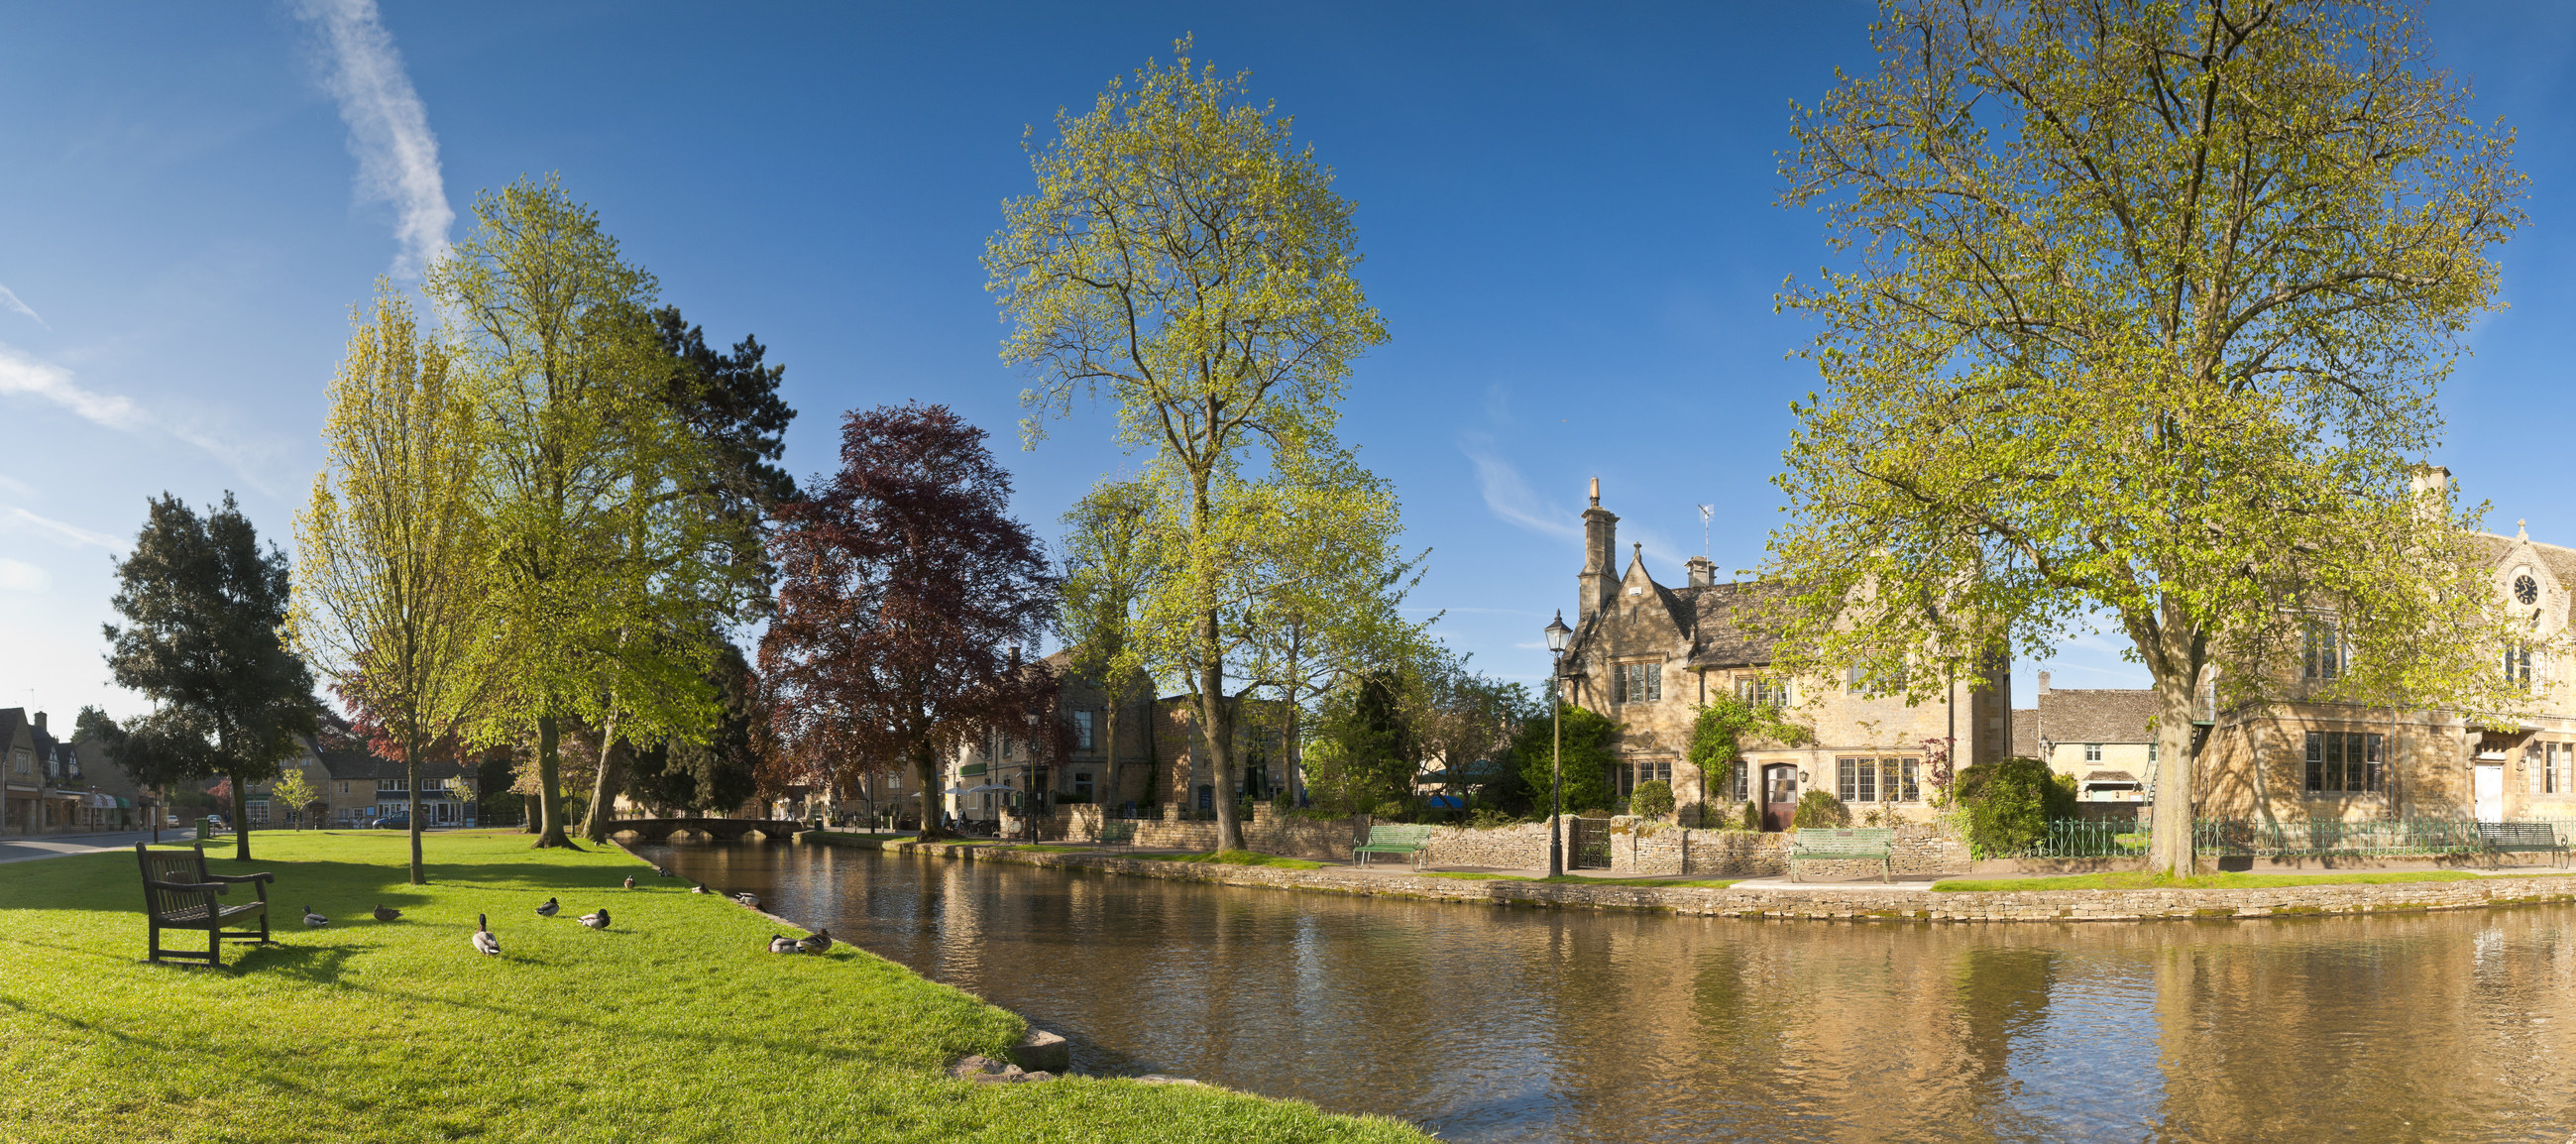 A view of the village's stone houses from over the River Windrush on a sunny and clear day